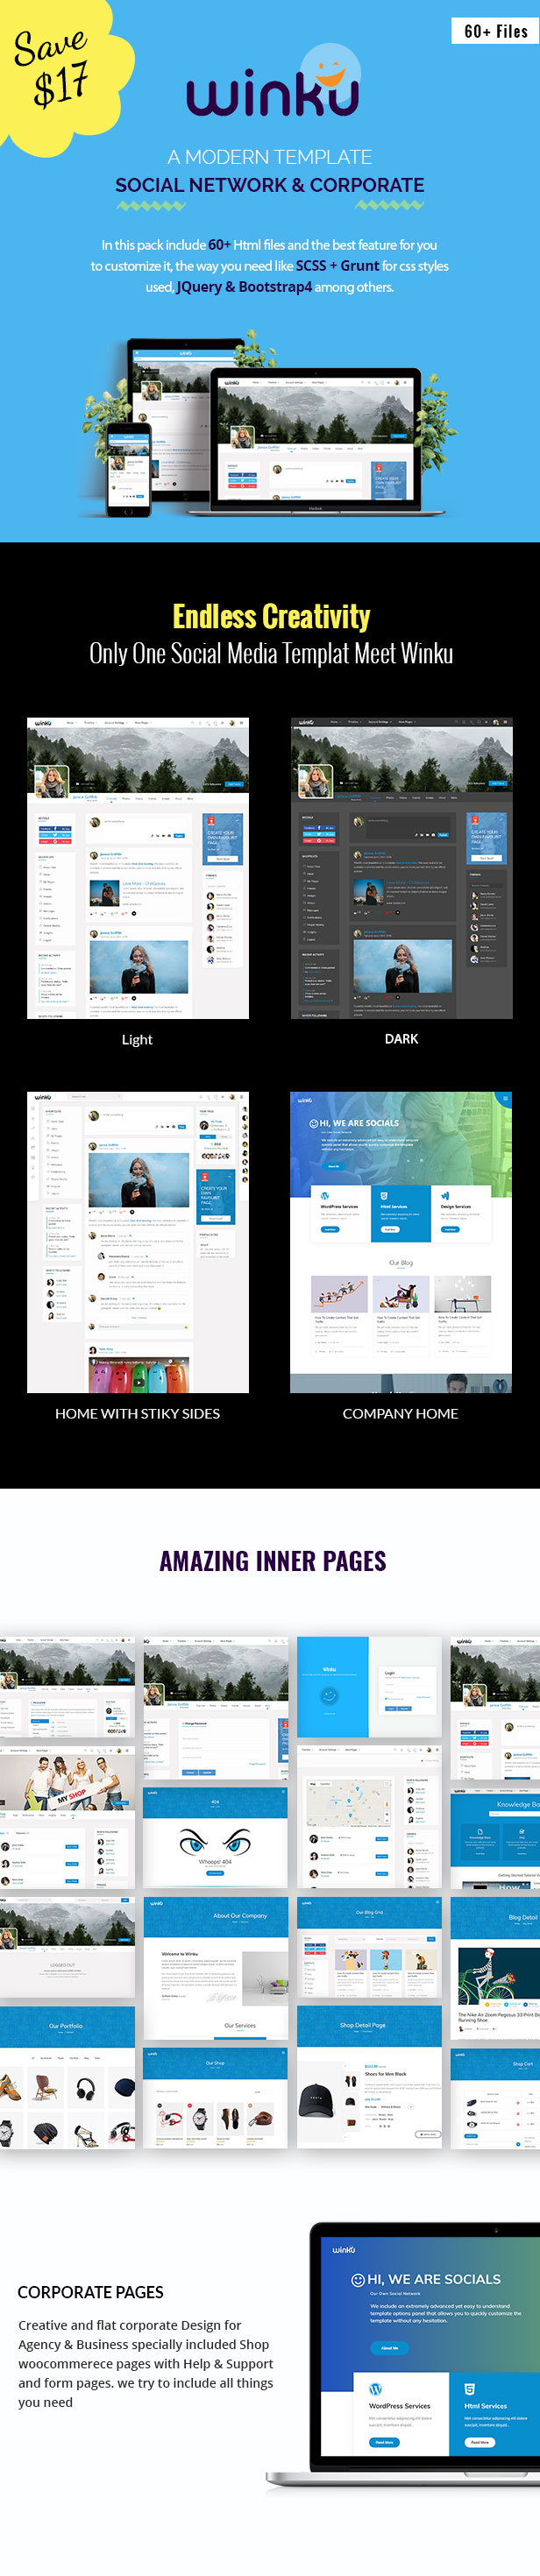 winku social network toolkit corporate responsive template by